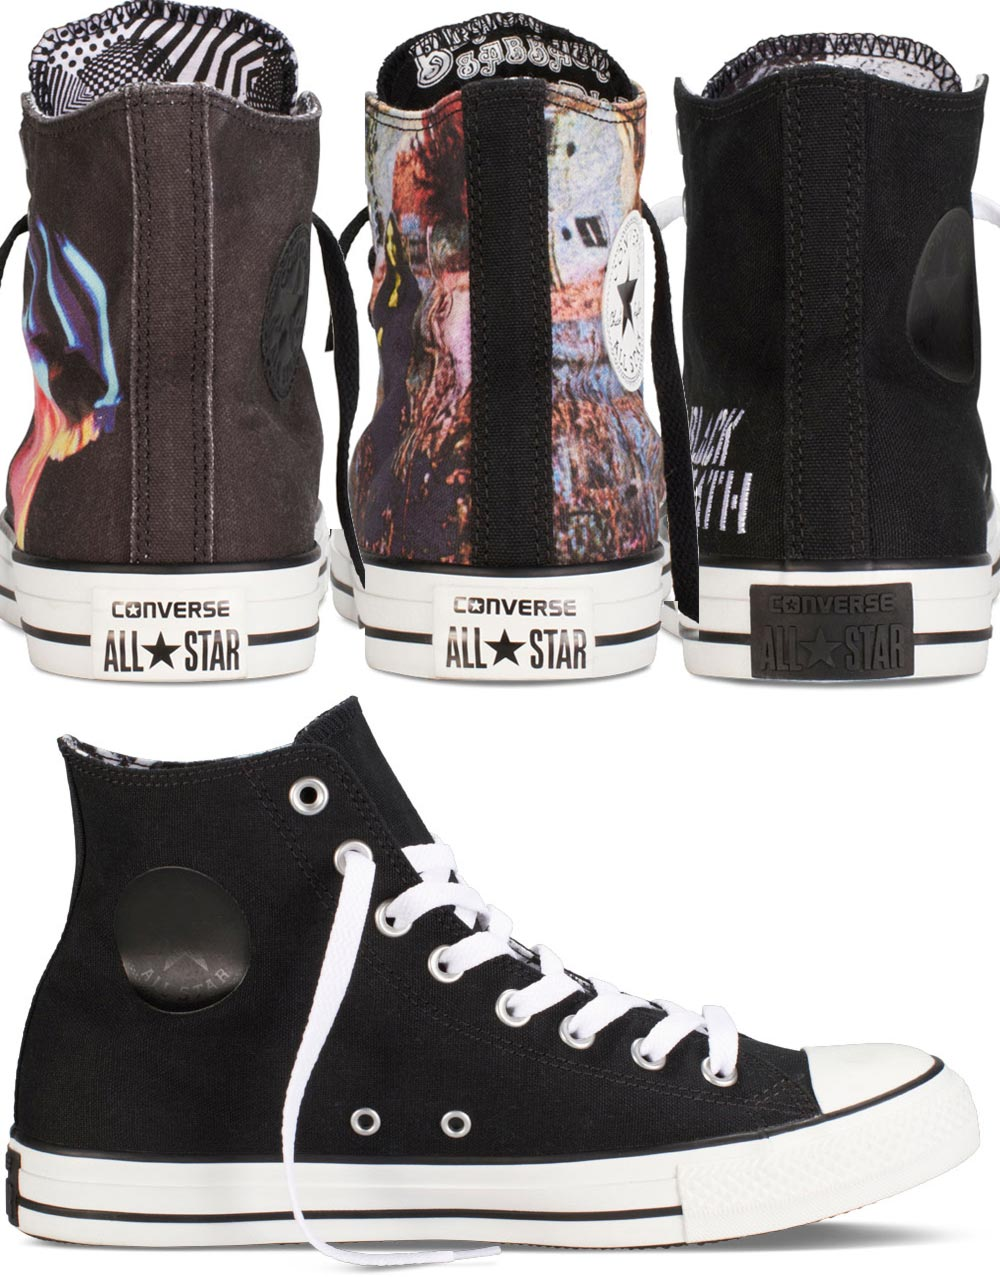 Converse Black Sabbath Chuck Taylor sneakers collection